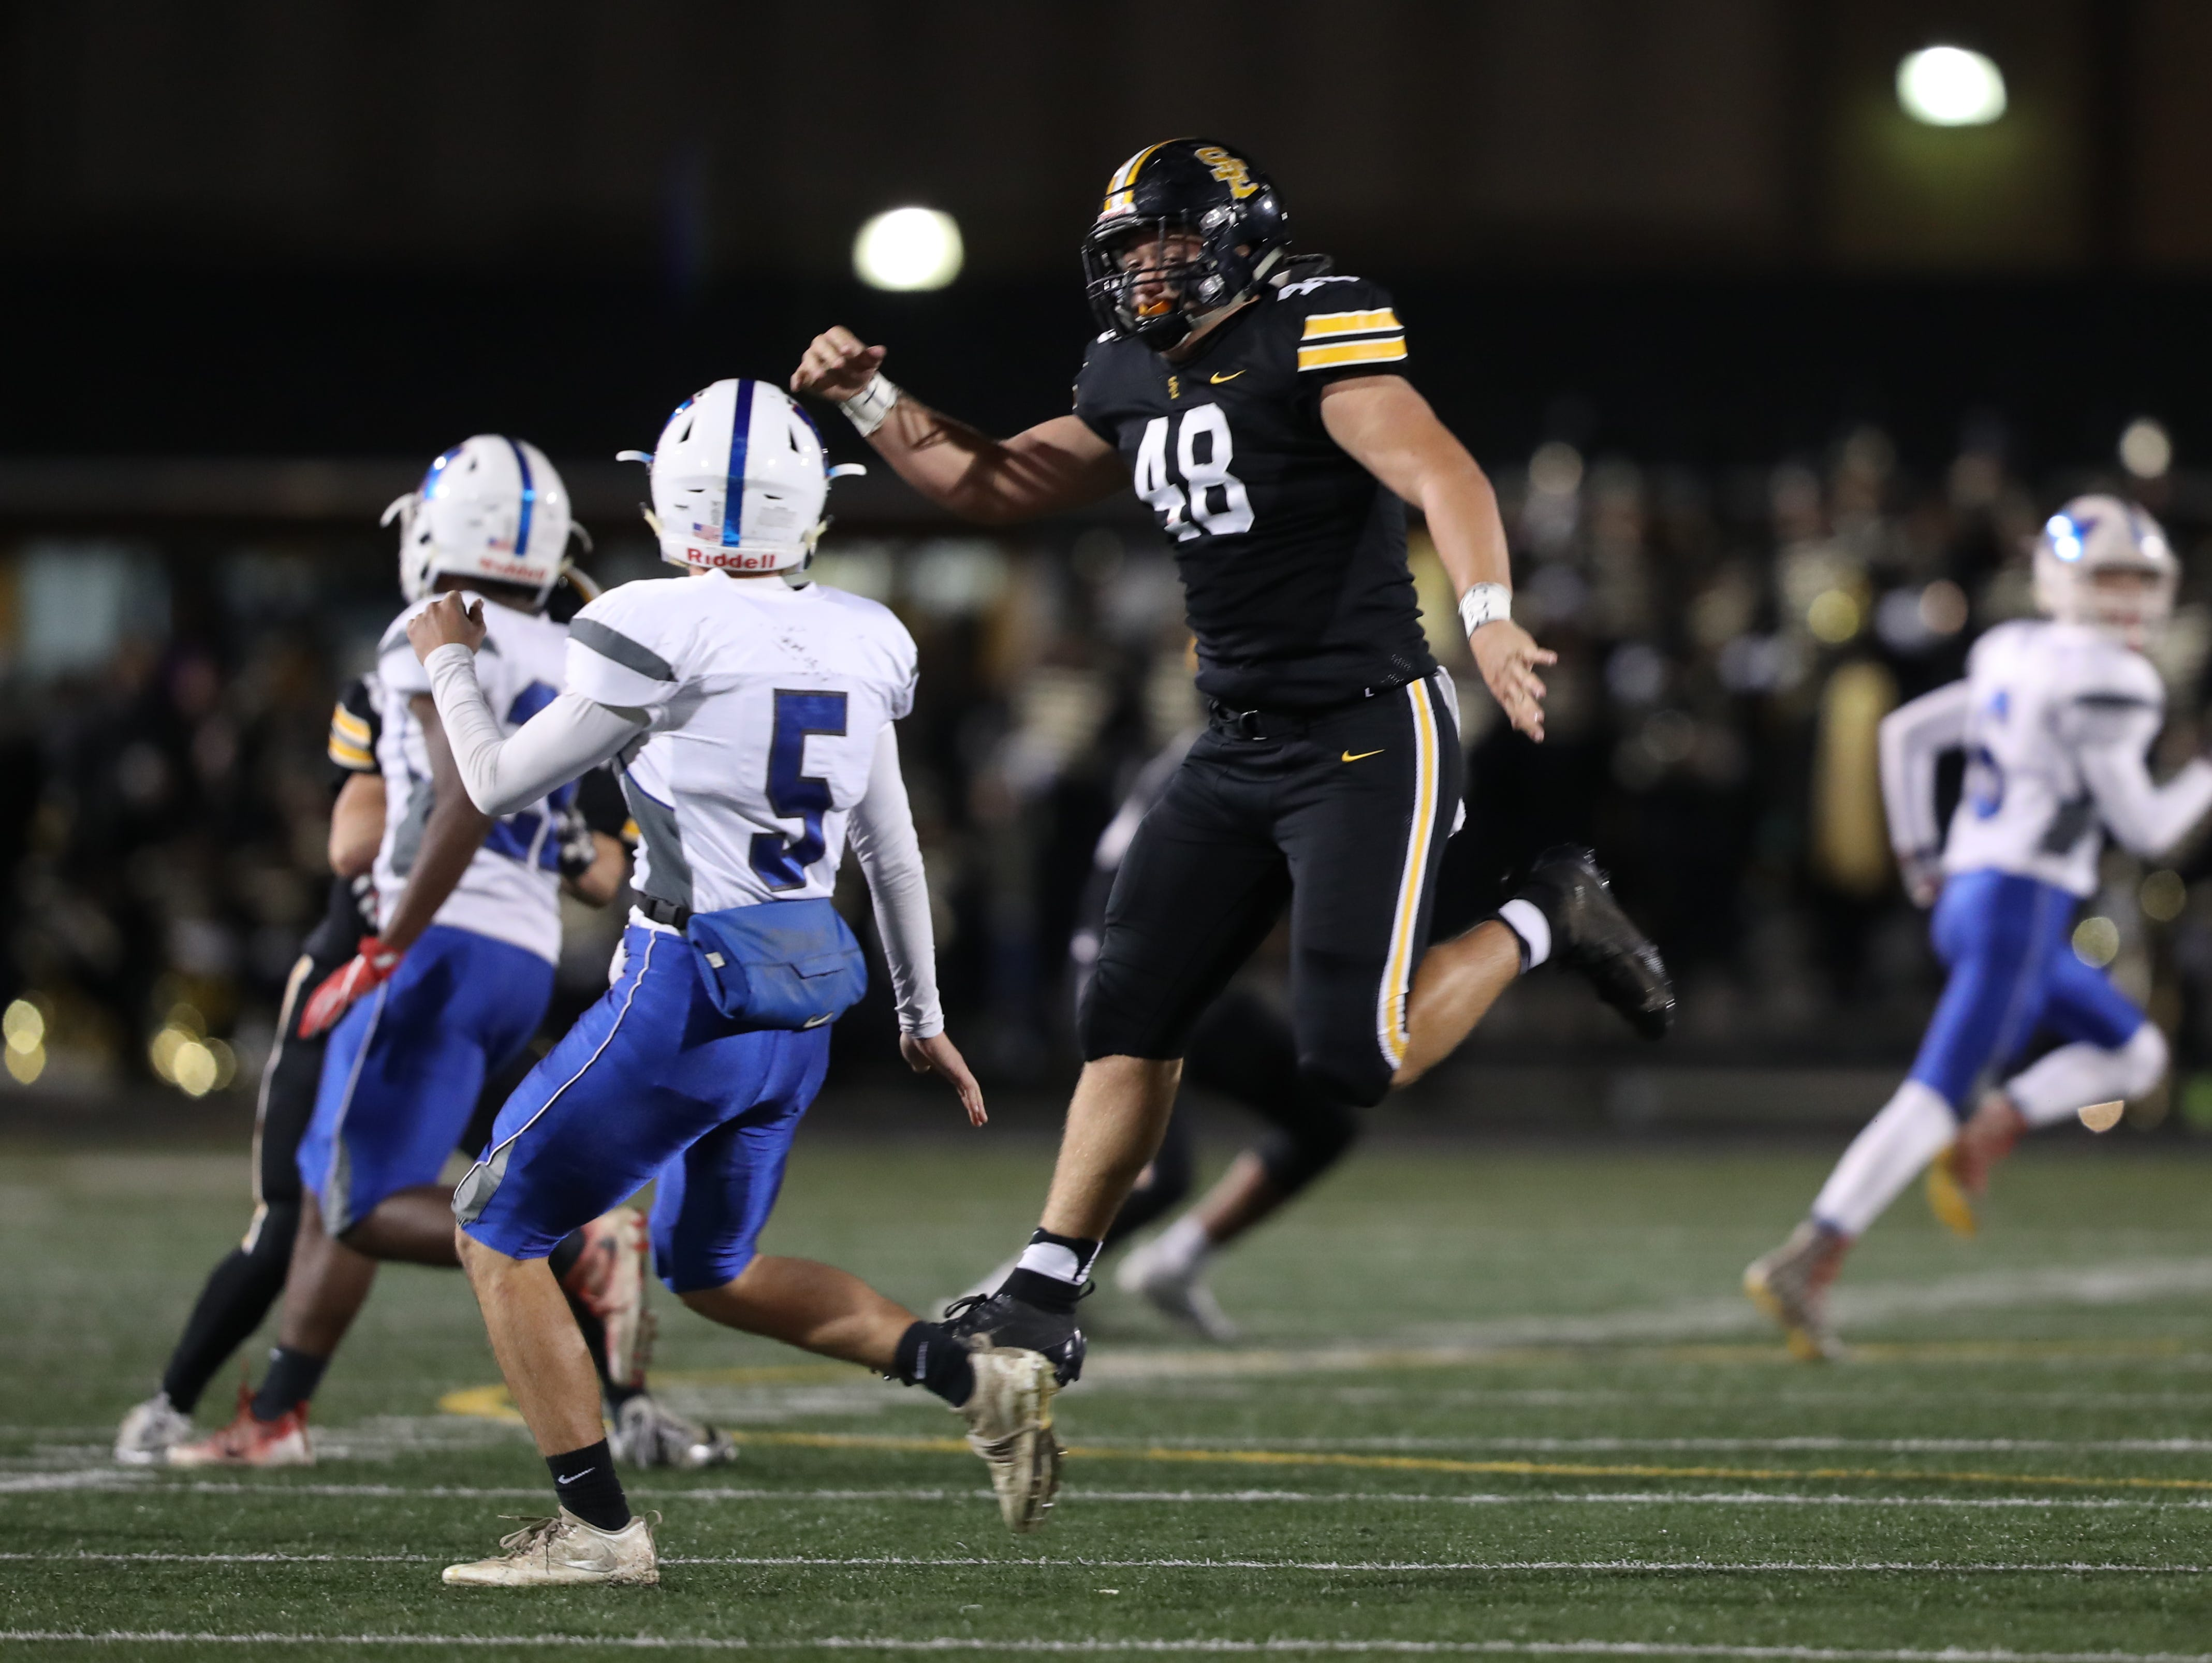 Southeast Polk Rams Bo Ira (48) pressures the QB against the Marshalltown Bobcats at SE Polk Stadium. The Rams beat the Bobcats 56 to 7.